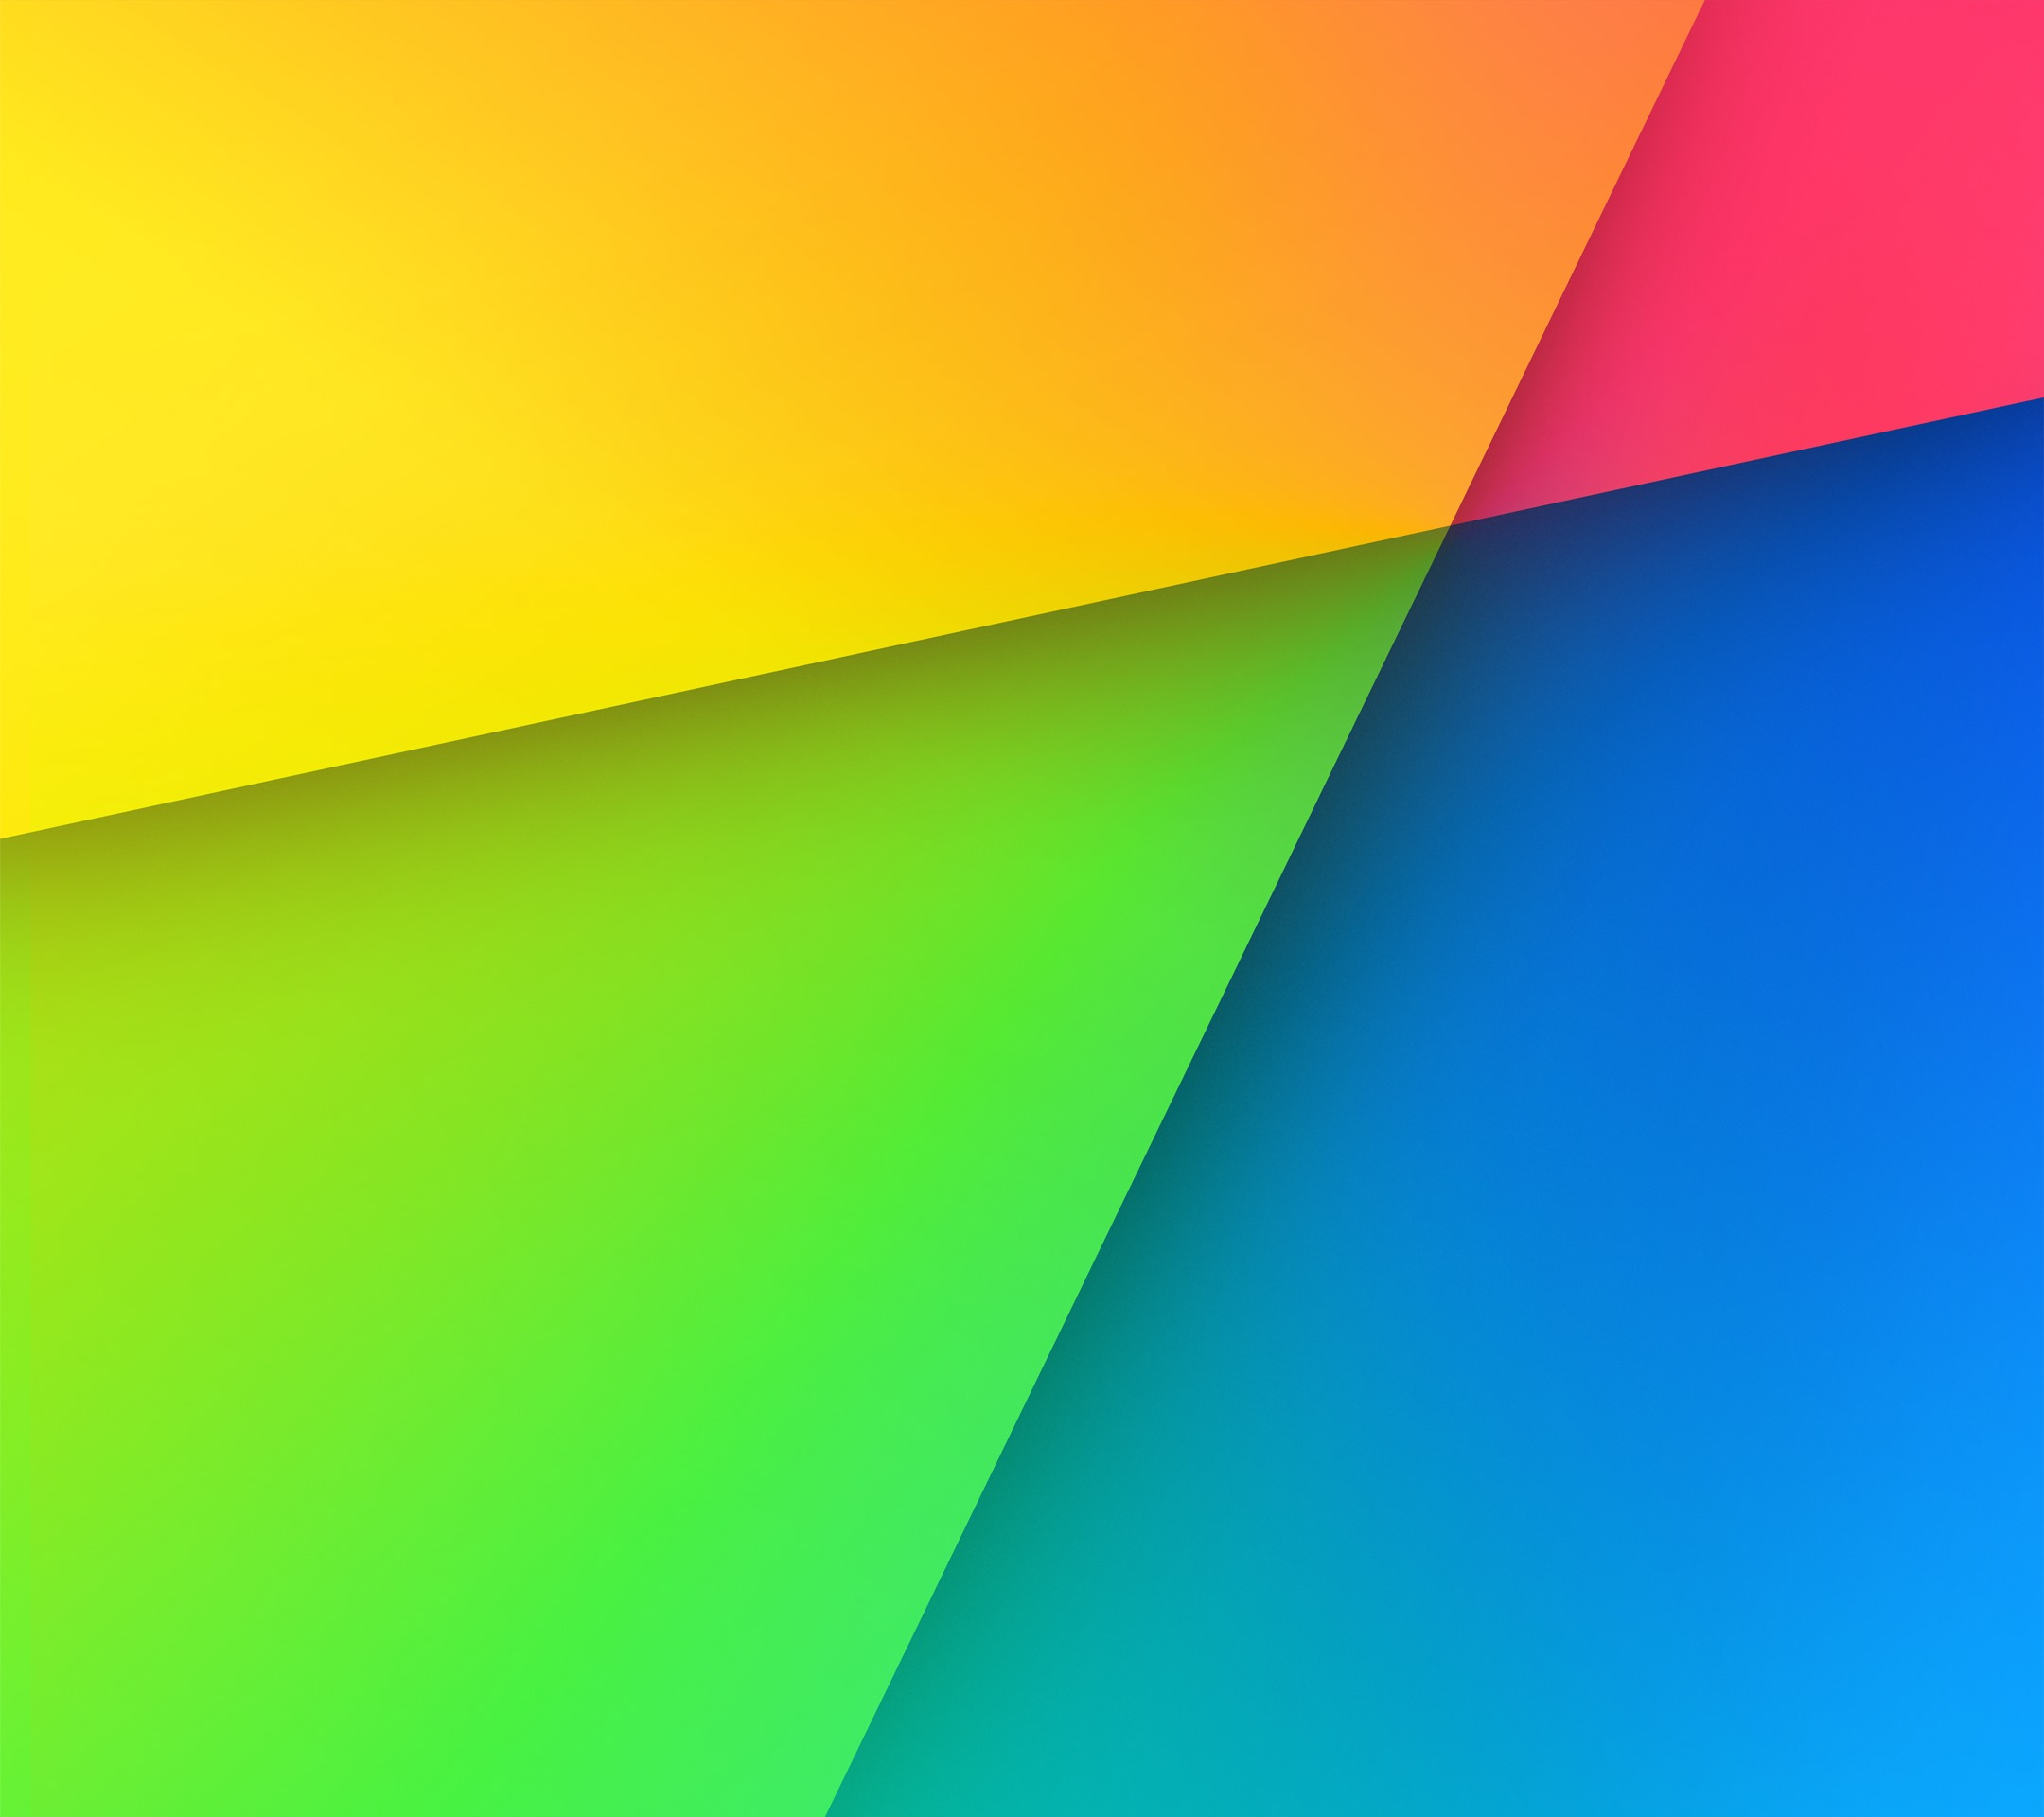 Download Wallpapers From The New Nexus 7 [Updated] 2160x1920